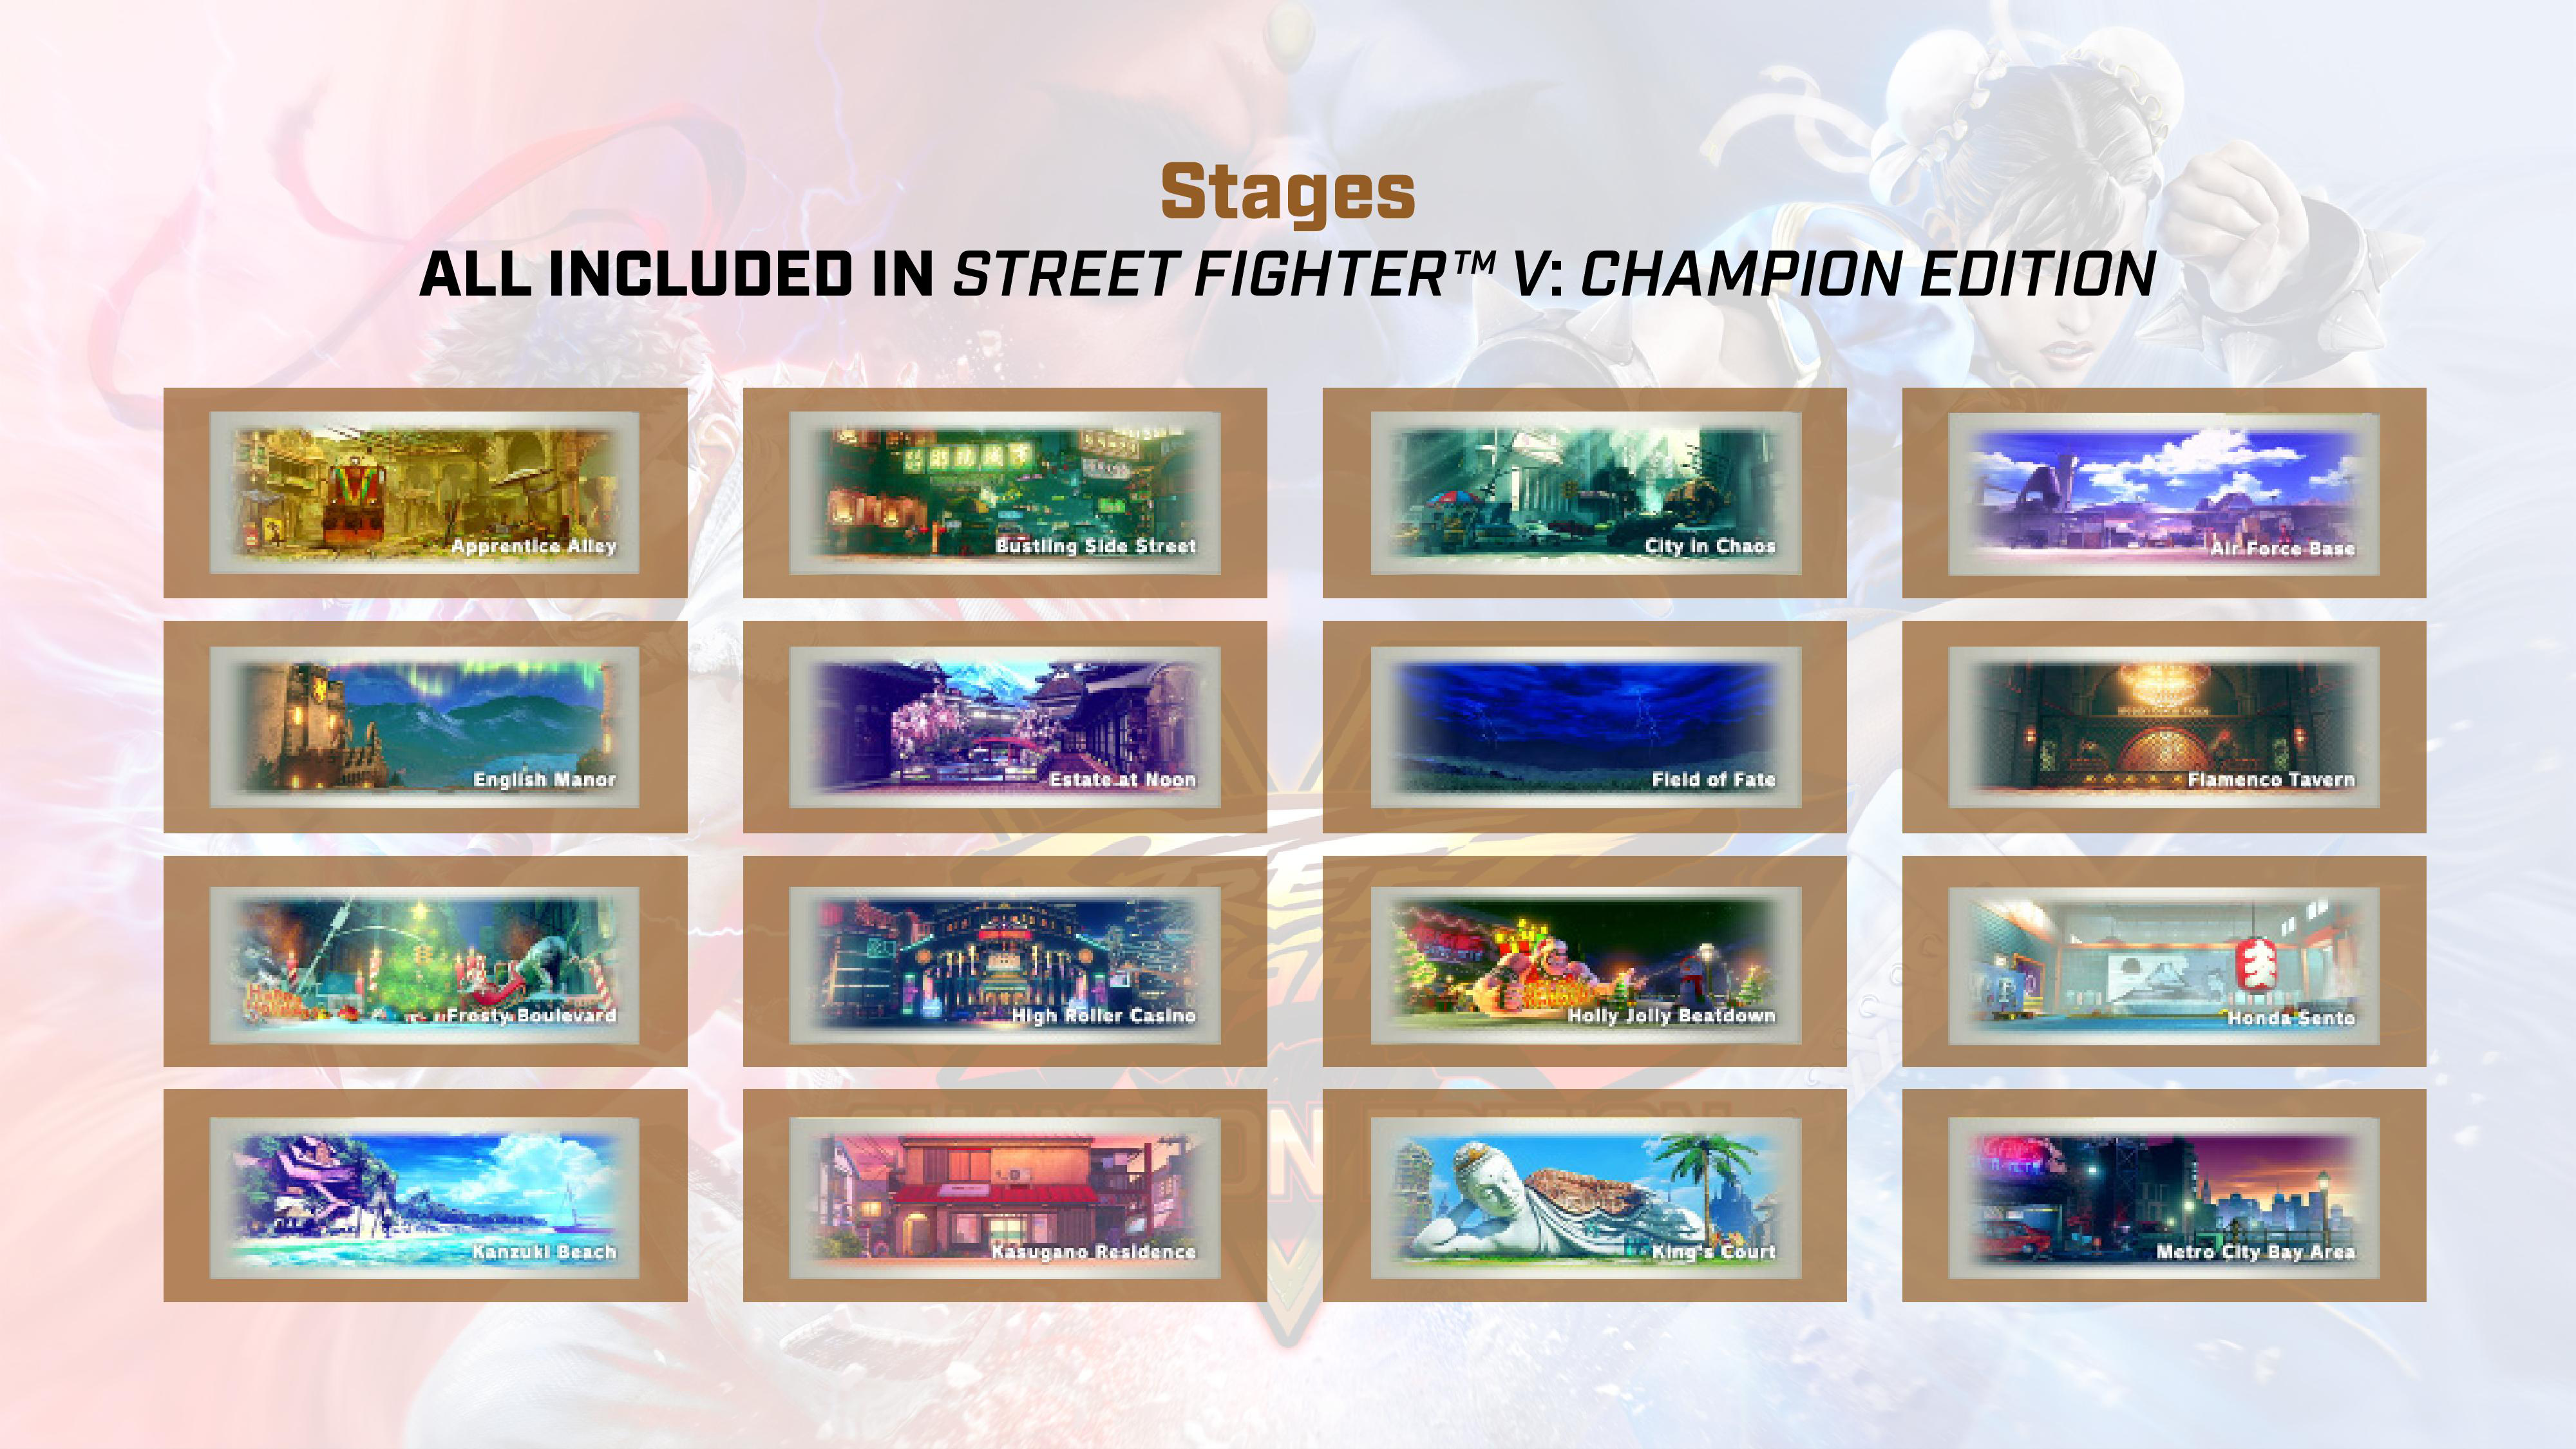 Street Fighter 5: Champion Edition contents 7 out of 9 image gallery